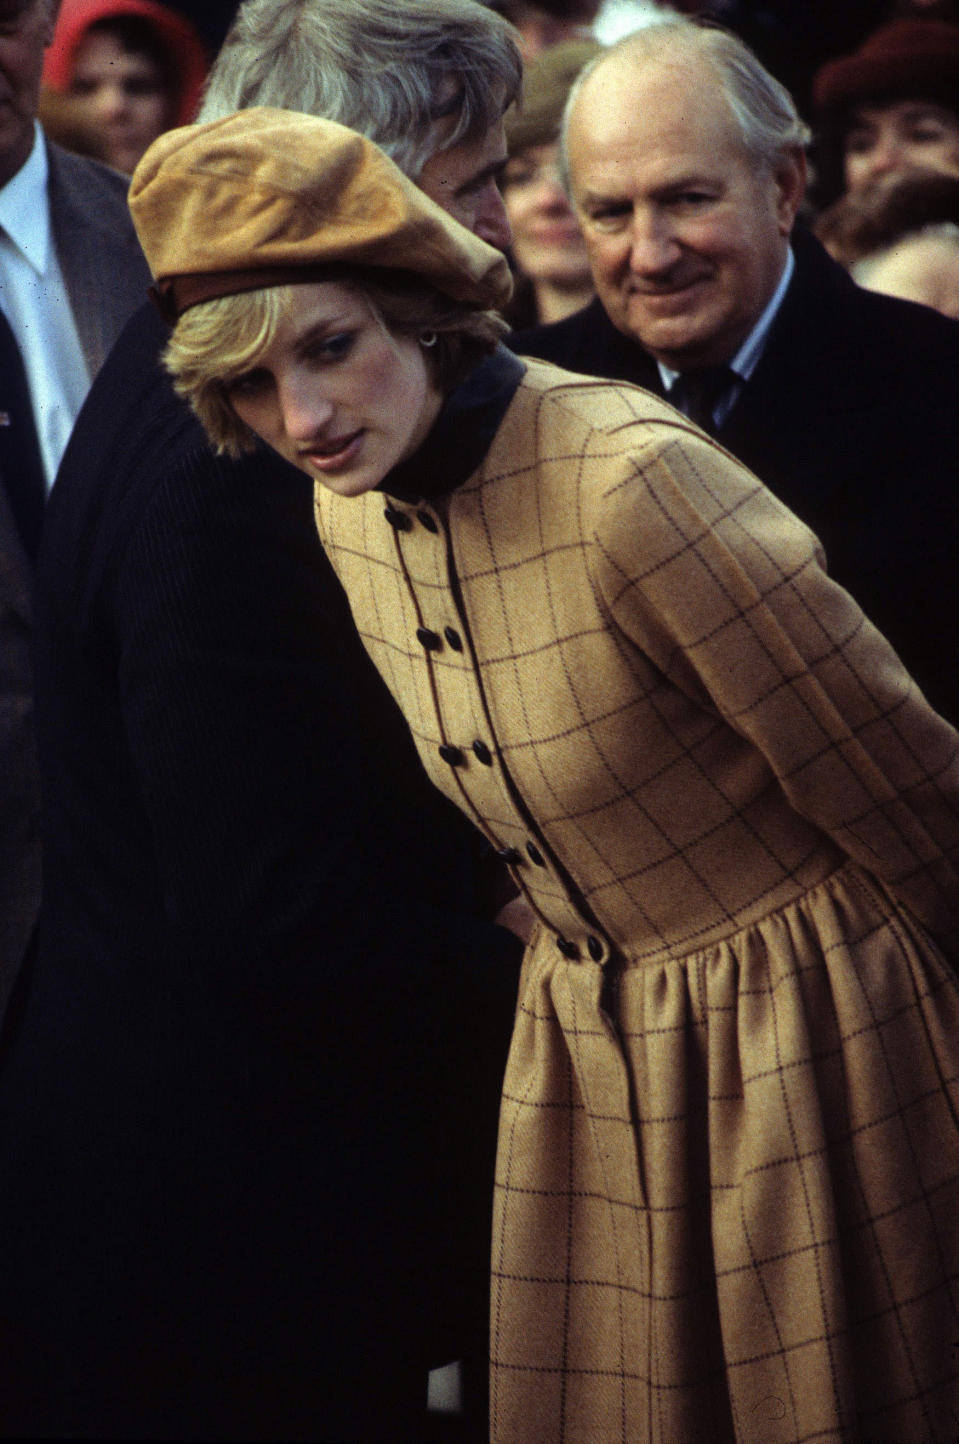 <p>A trend which has made a comeback this season, the beret. Here, Princess Diana tucks her side fringe beneath a brown beret which she wears with a button-up checked coat.<br><em>[Photo: PA]</em> </p>